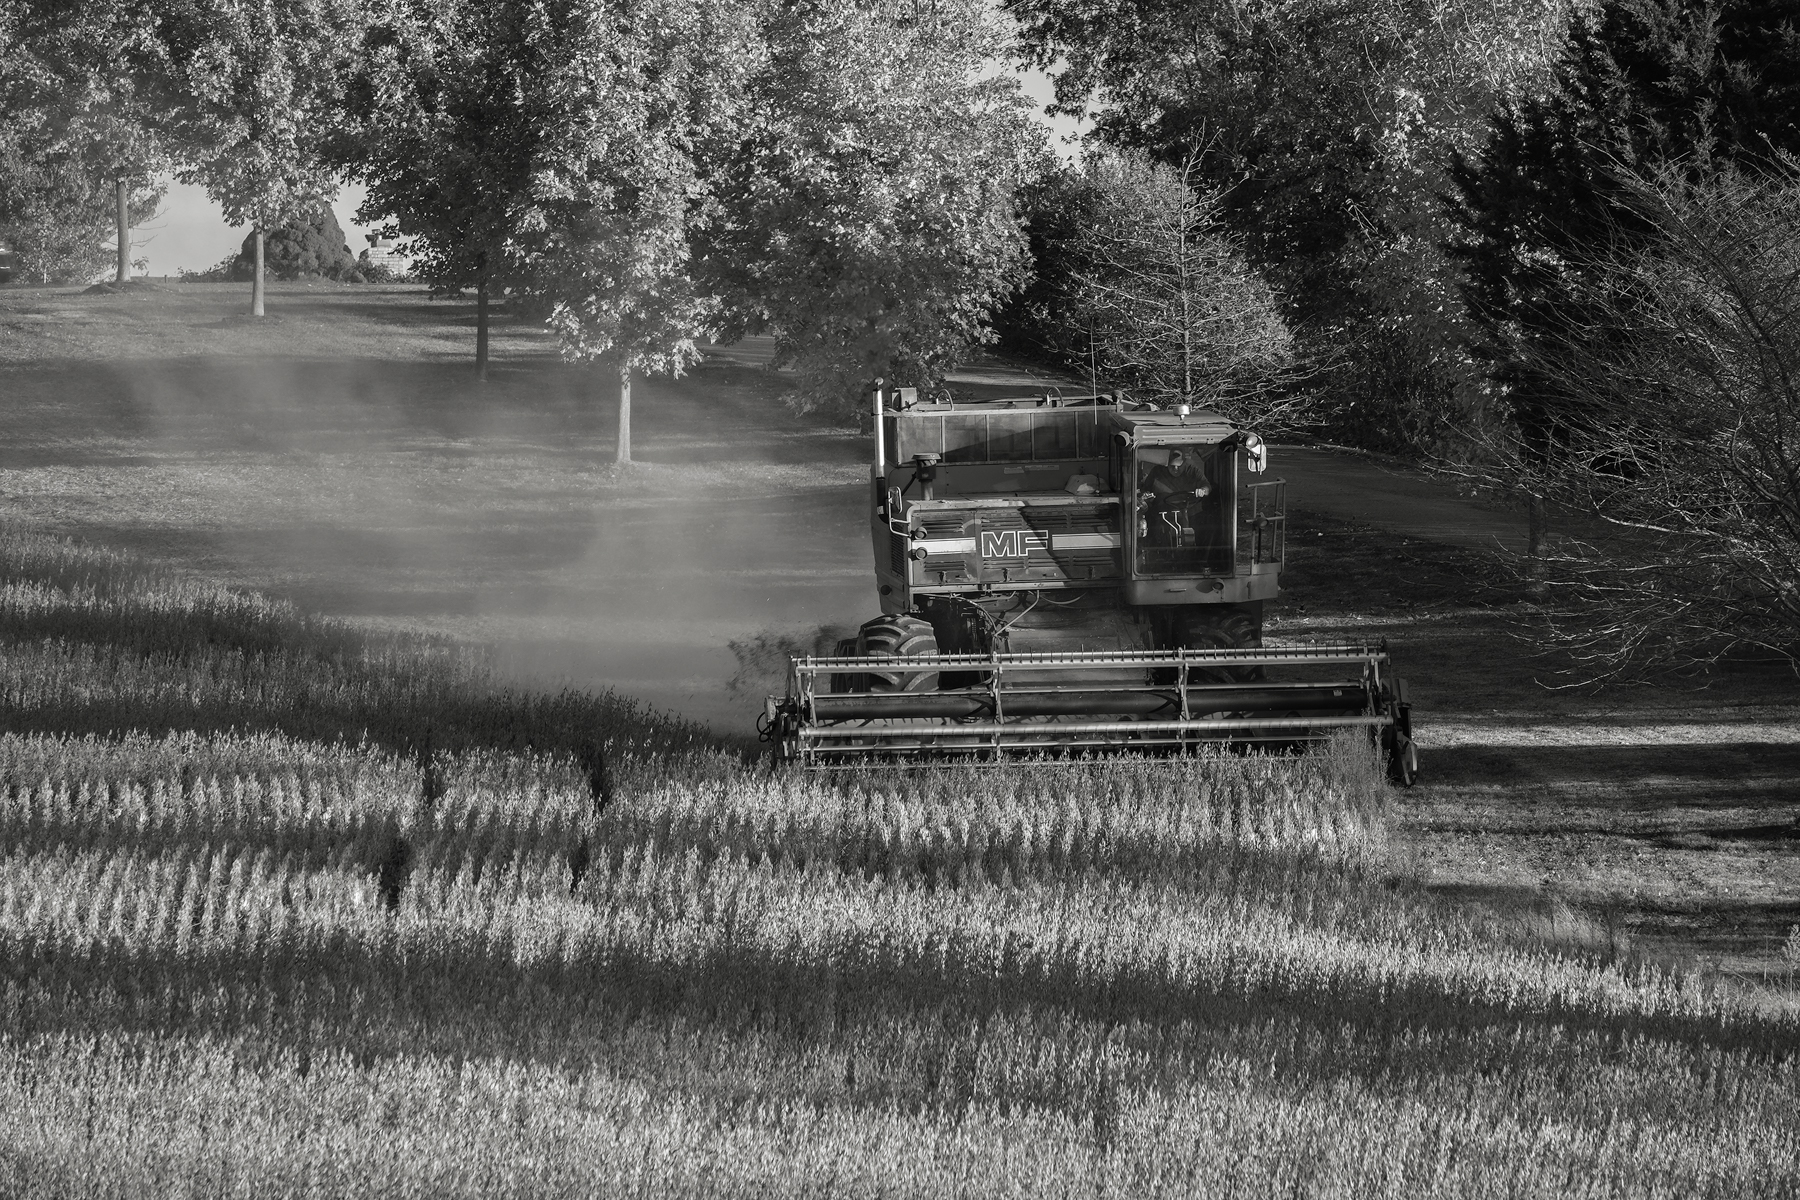 A single combine moves down hill towards my camera position. Fuji X-T2 and a Fujinon XF55-200mm at 70mm. Image exposed at ISO 200 at f5.6 for 1/60 of a second.